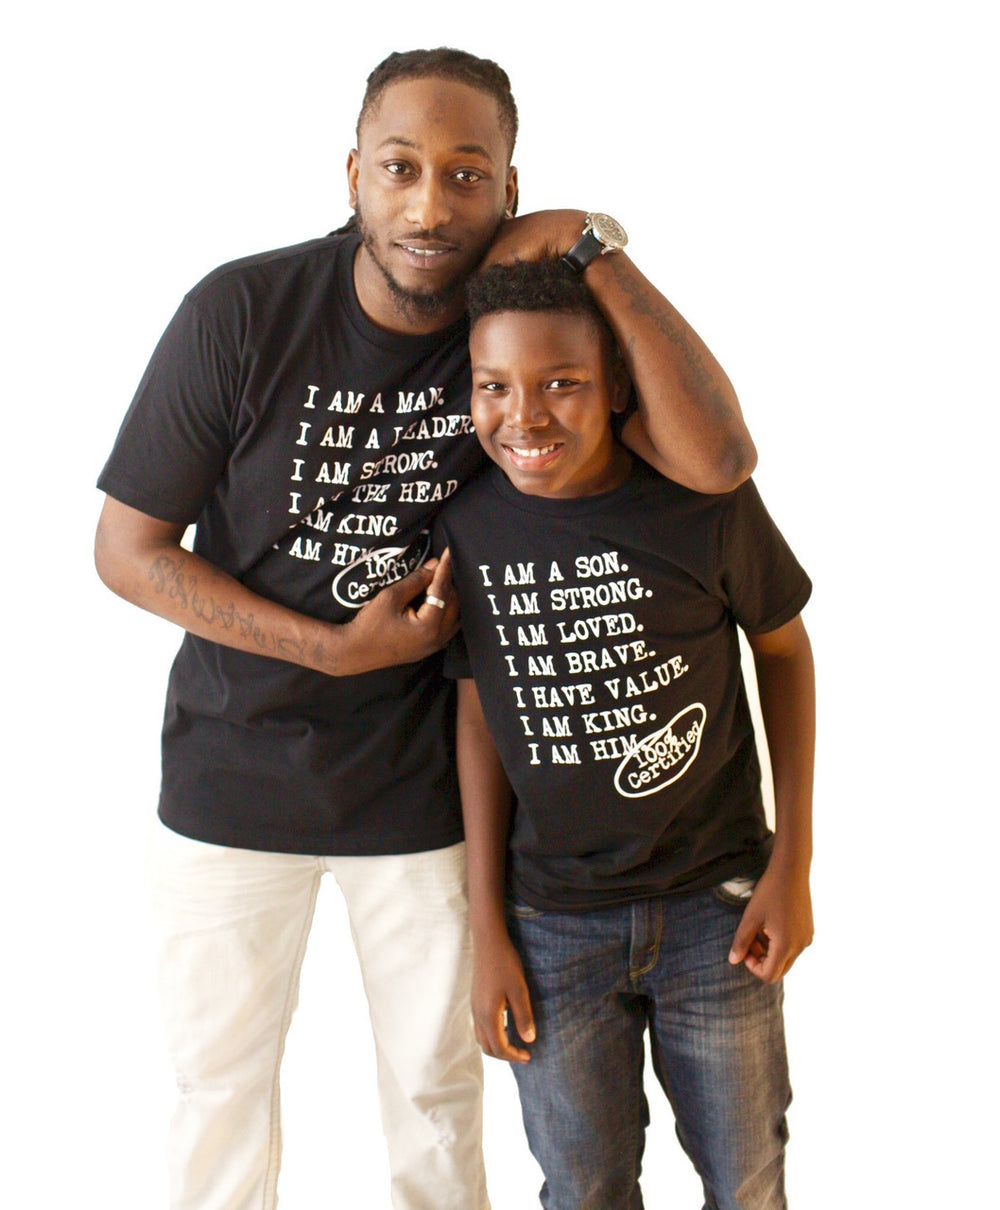 I AM A MAN – Casual T Shirts for Men - I AM HER Apparel, LLC